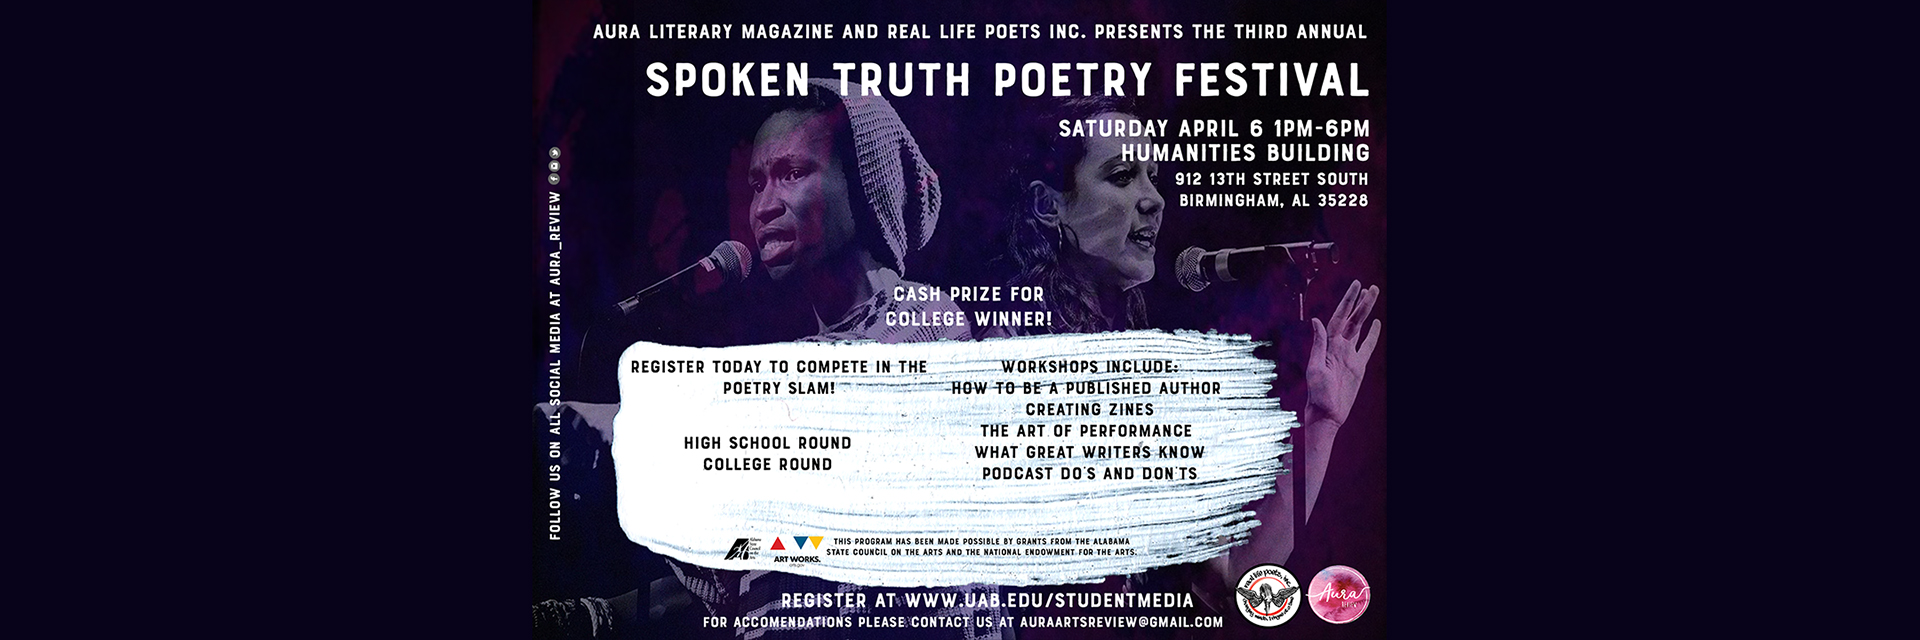 Spoken Truth Poetry Festival